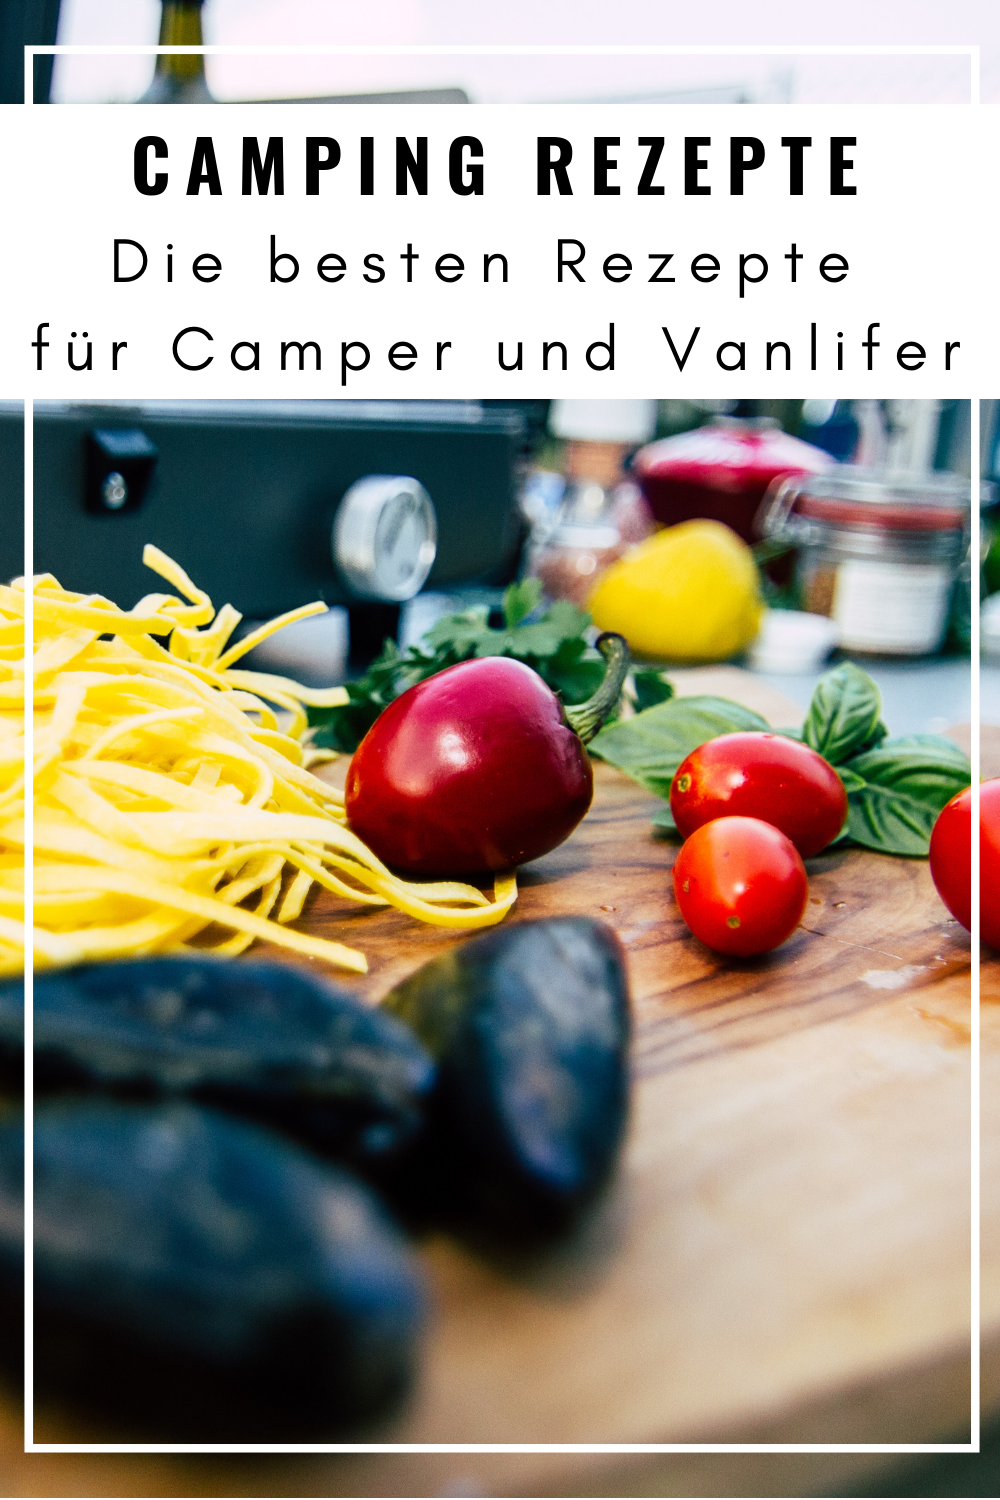 Photo of Camping Recipes for Camper and Vanlifer